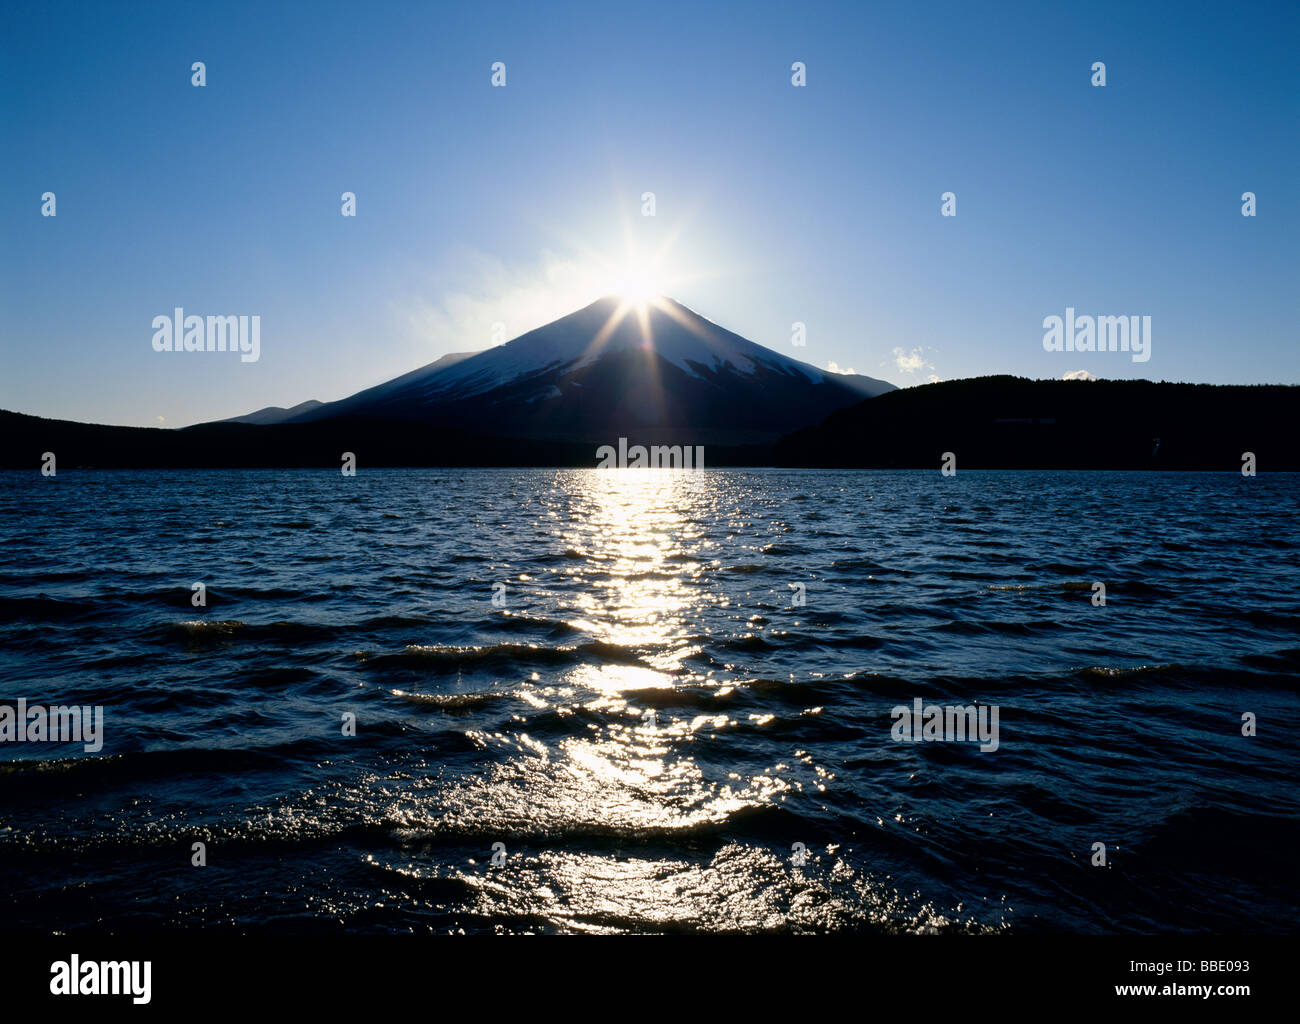 Diamond Fuji - Stock Image